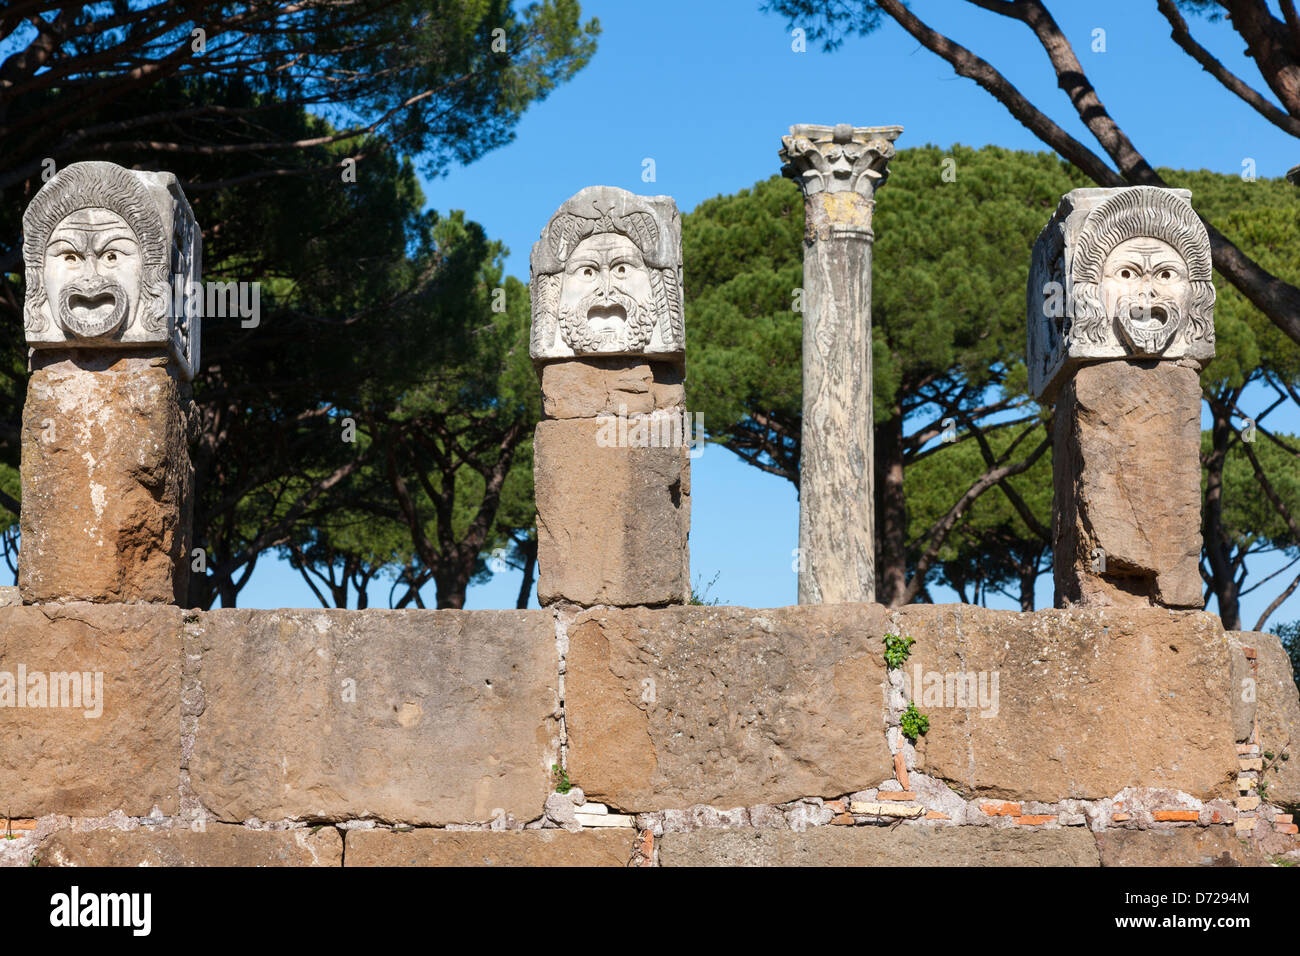 Carved Roman heads in Ostia Antica, Rome, Italy - Stock Image